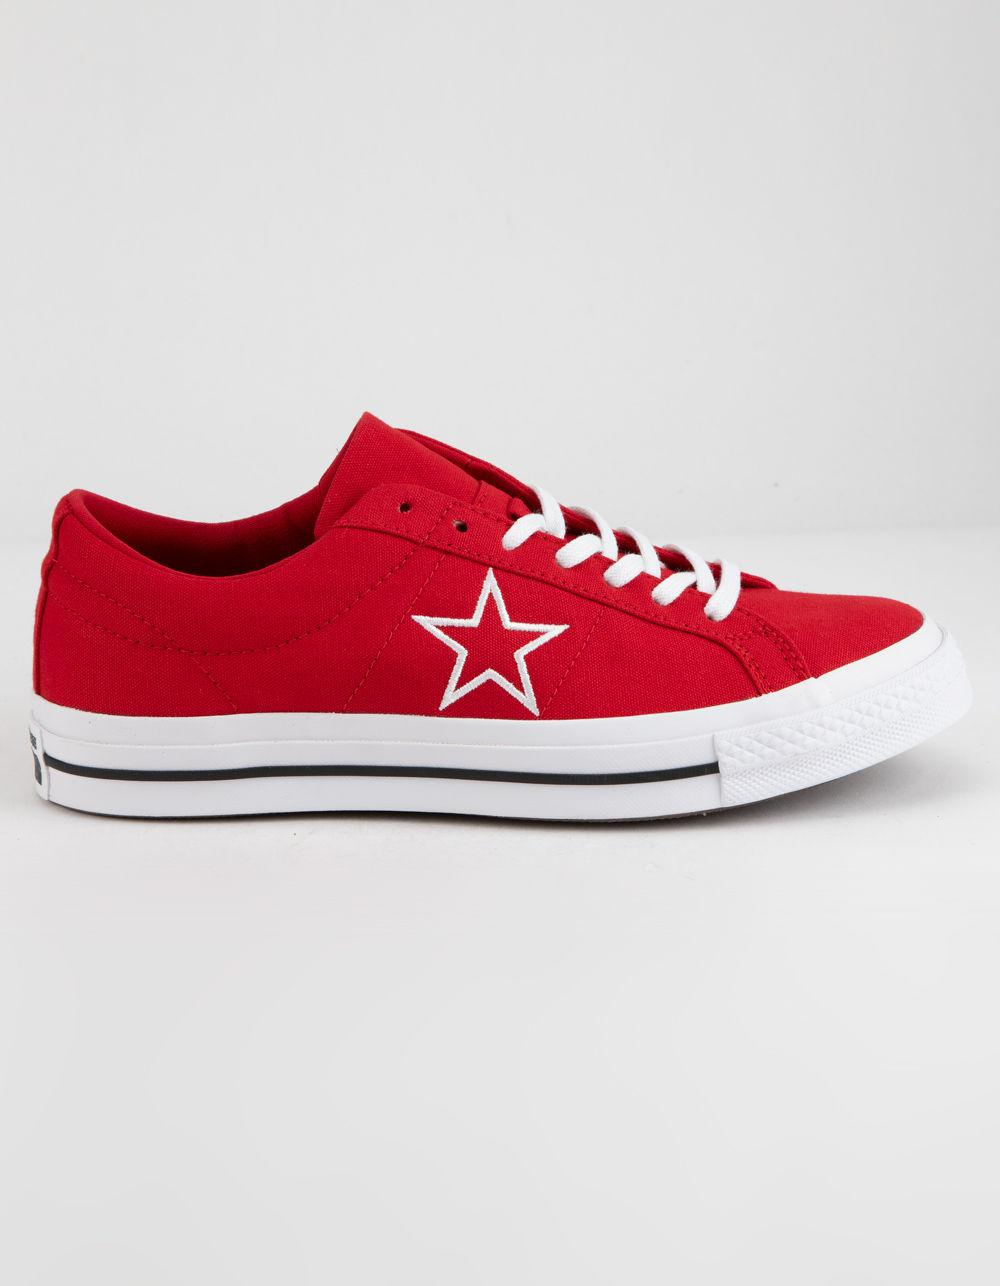 e78f1c27344 Lyst - Converse One Star Ox Enamel Red   White Low Top Shoes in Red